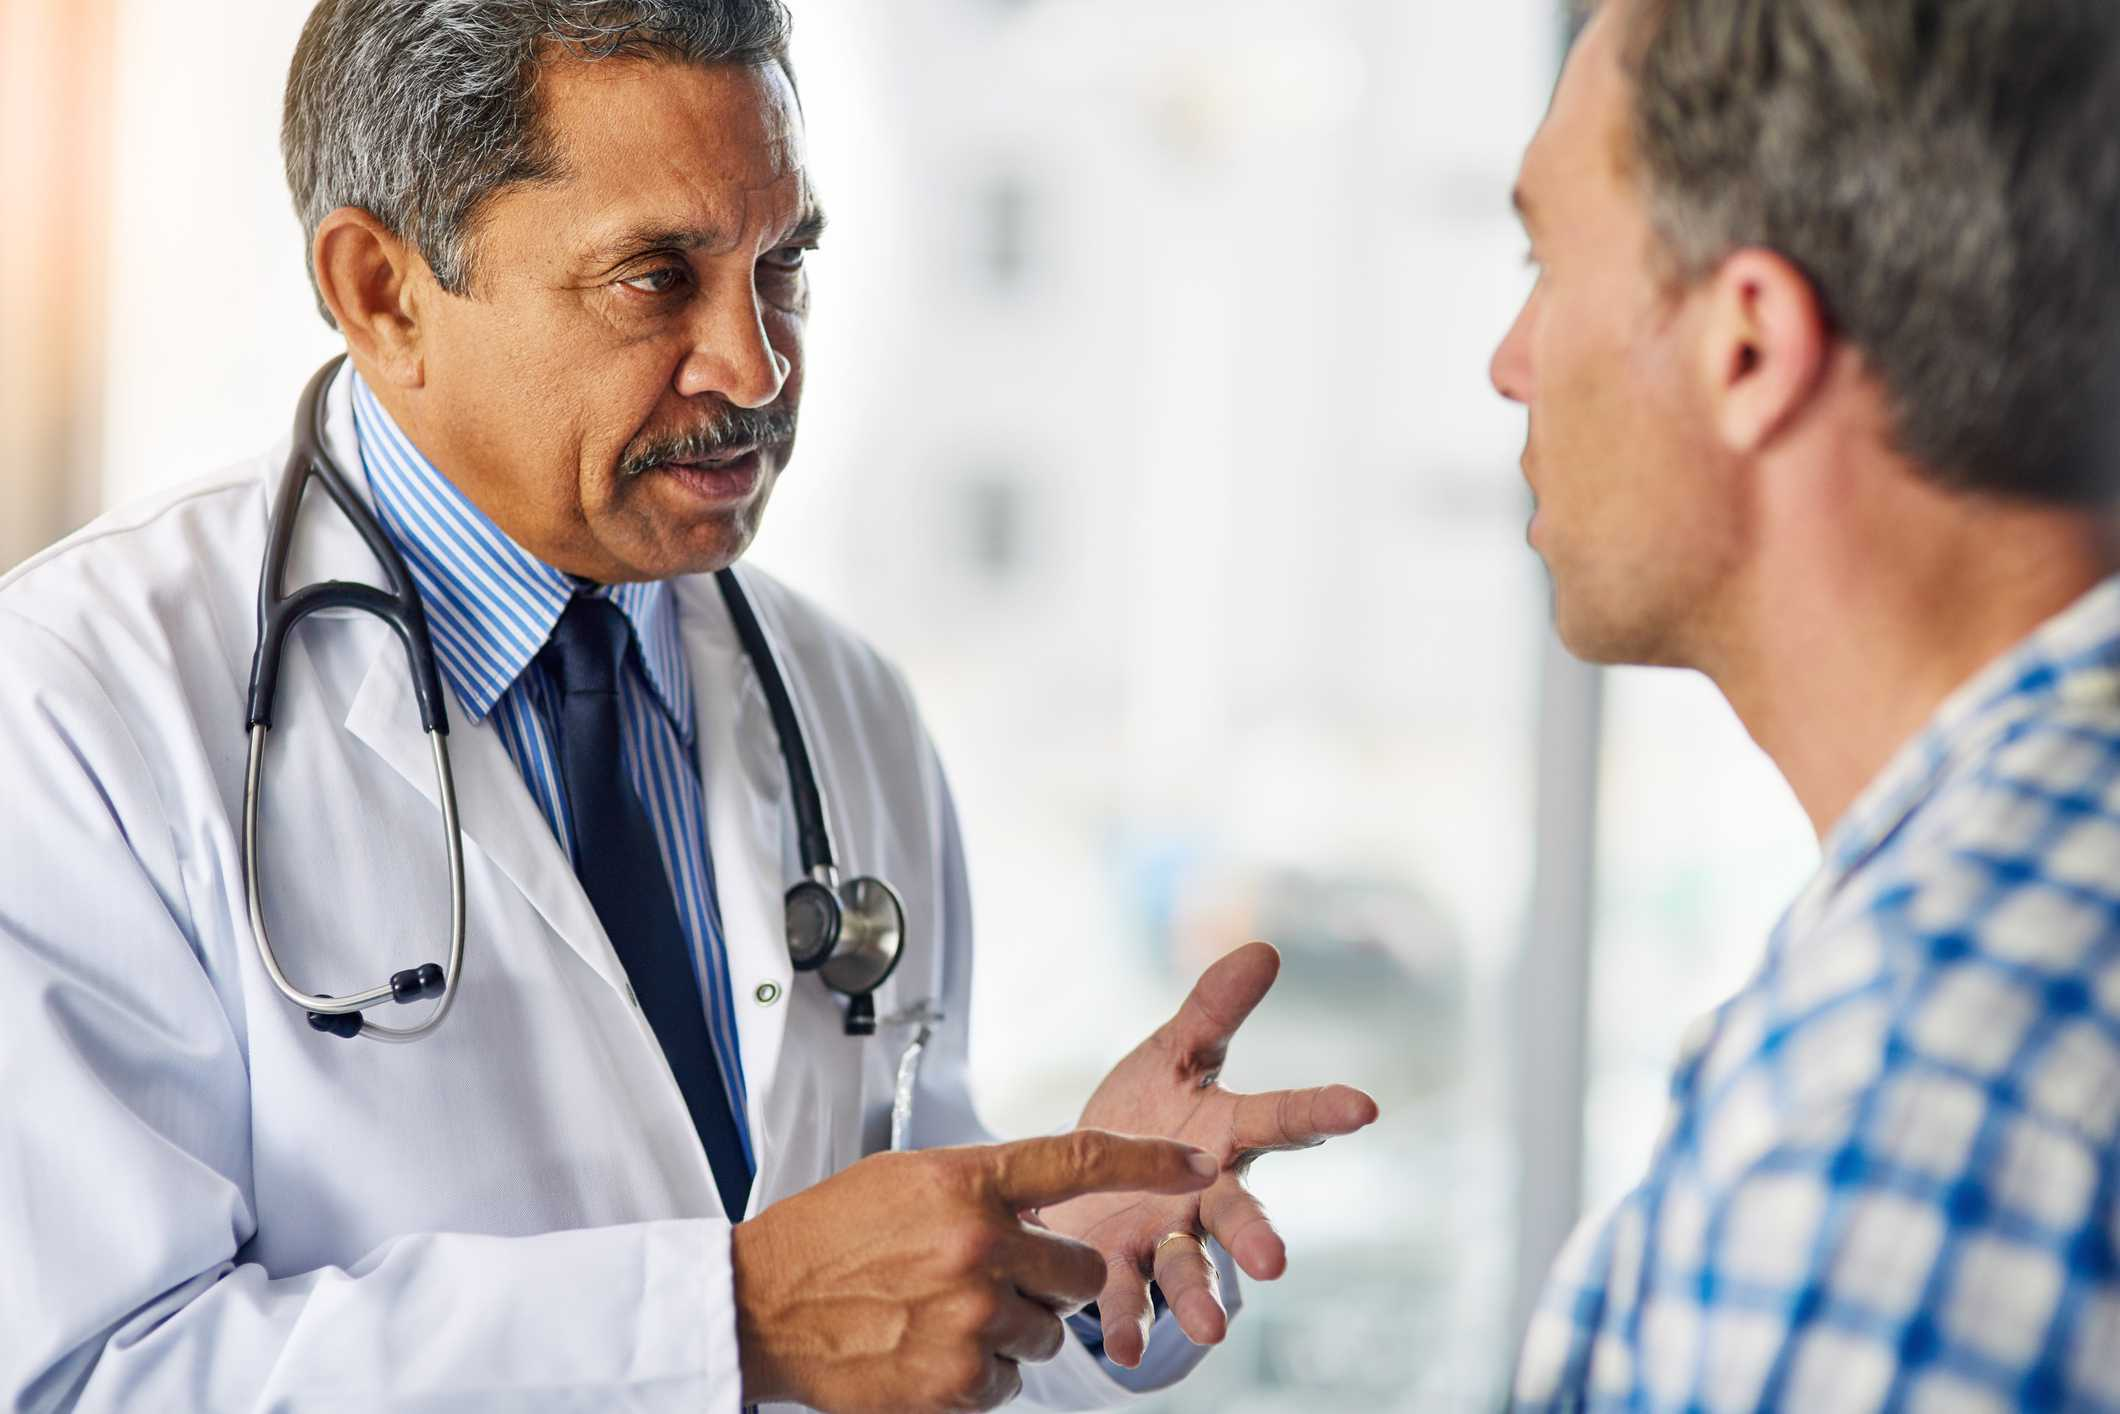 Male doctor speaking to male patient